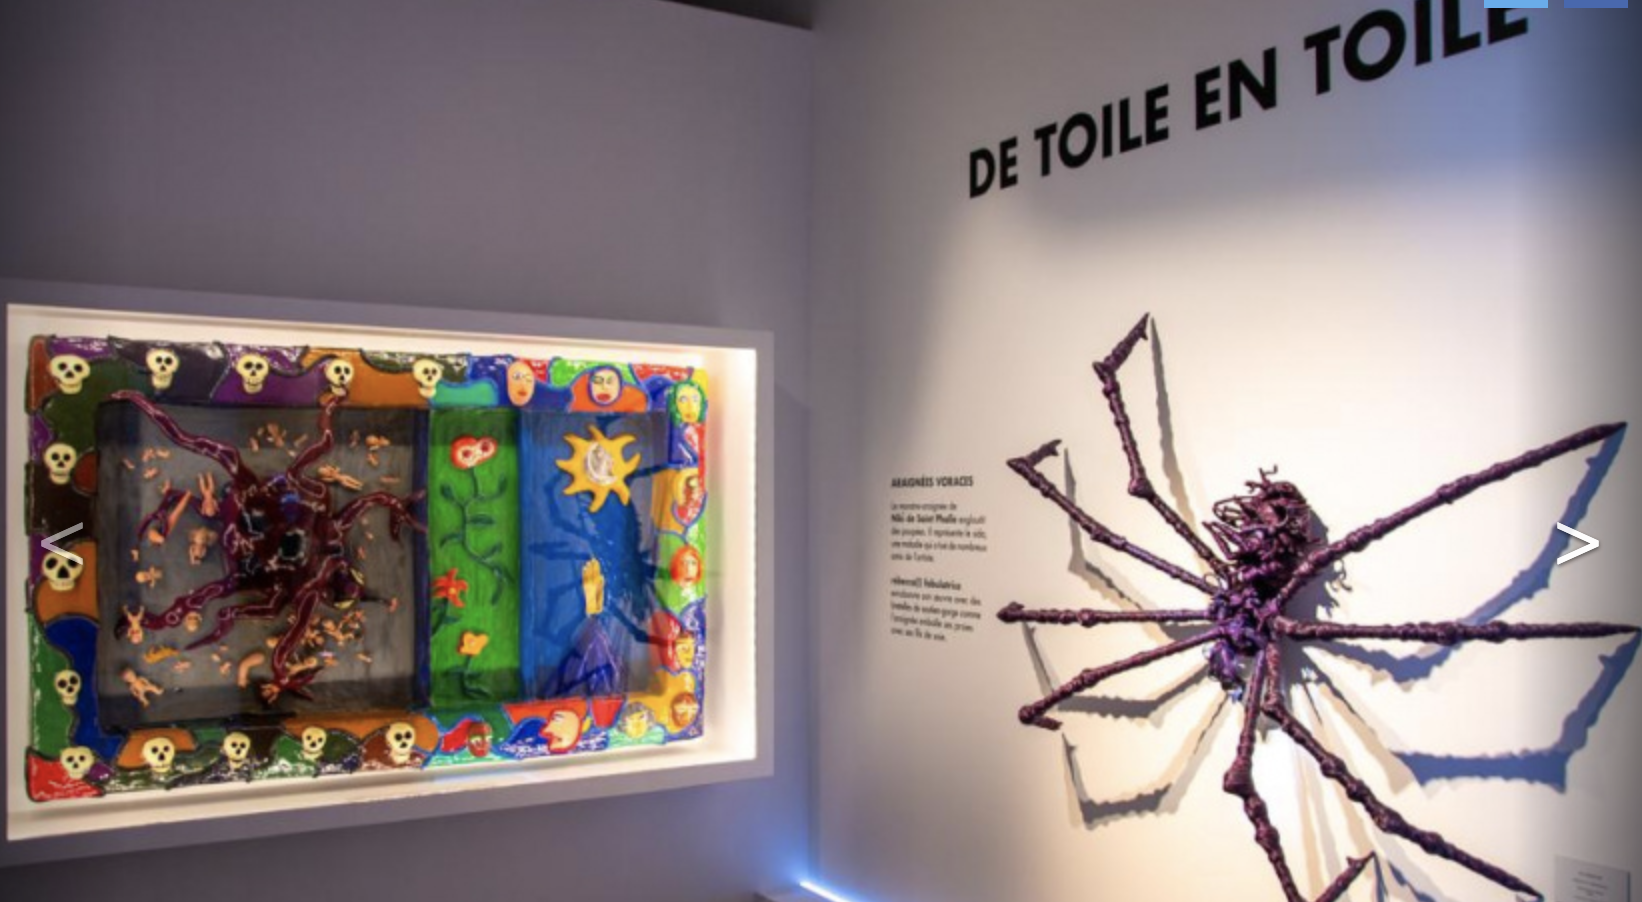 ARAIGNÉES, LUCIOLES ET PAPILLONS, THE ARTISTIC-SCIENTIFIC EXHIBITION AT PARIS MUSÉE EN HERBE